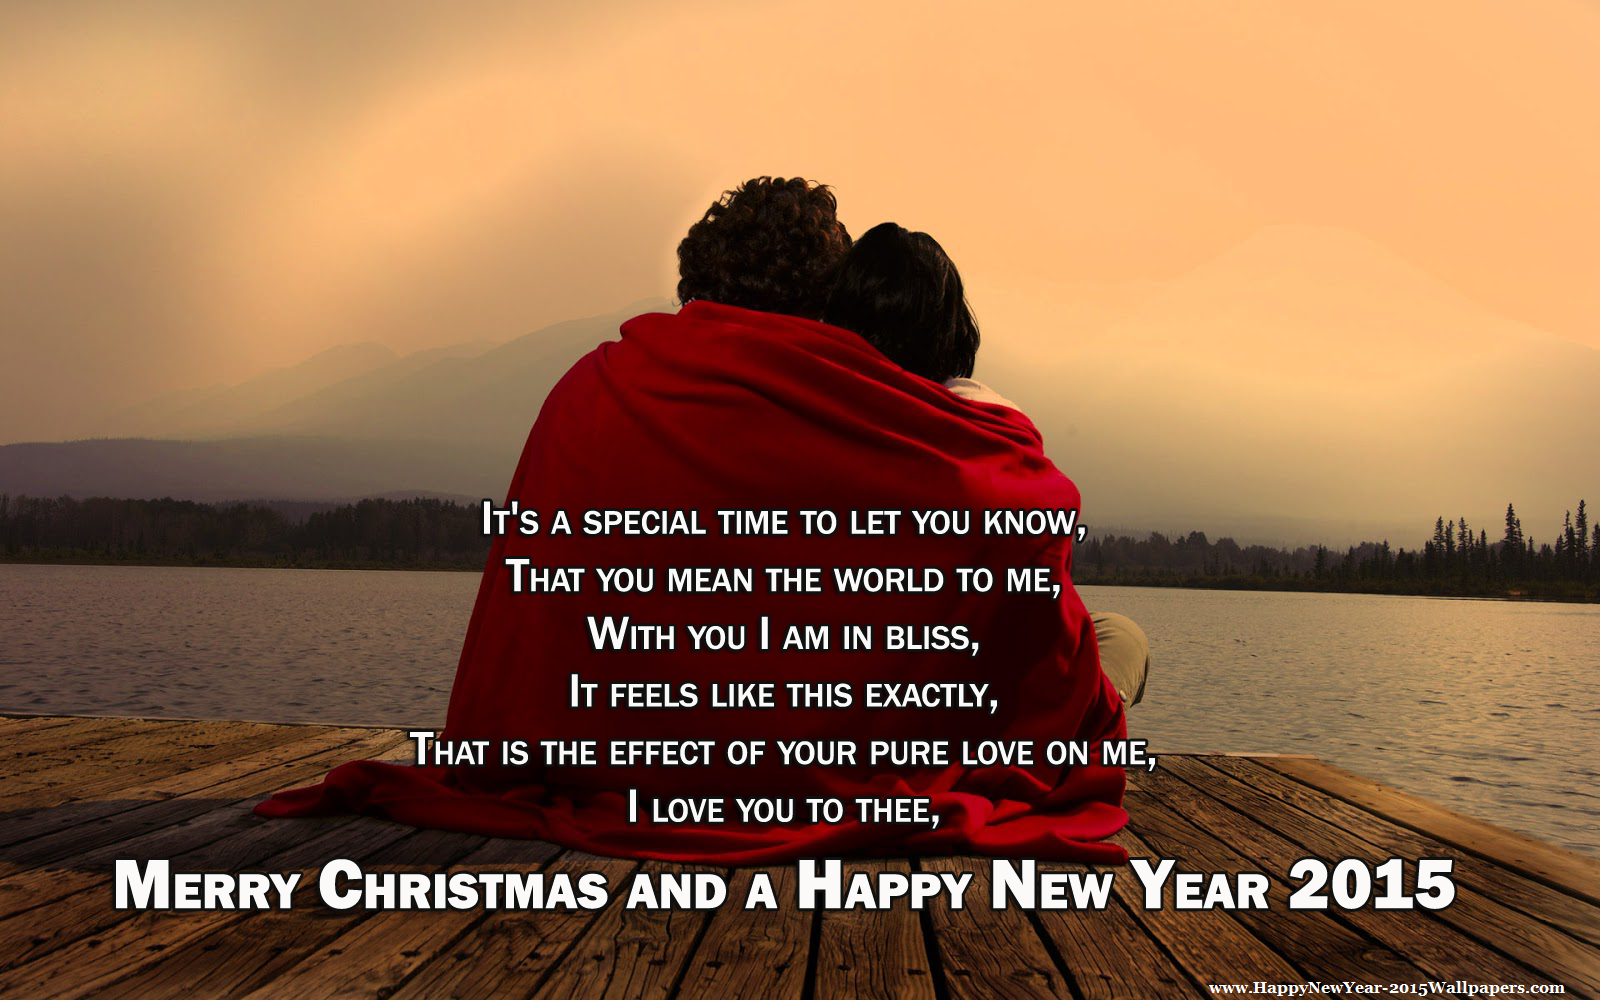 Get Ready To Celebrate The Christmas New Year 2015 With Your Love